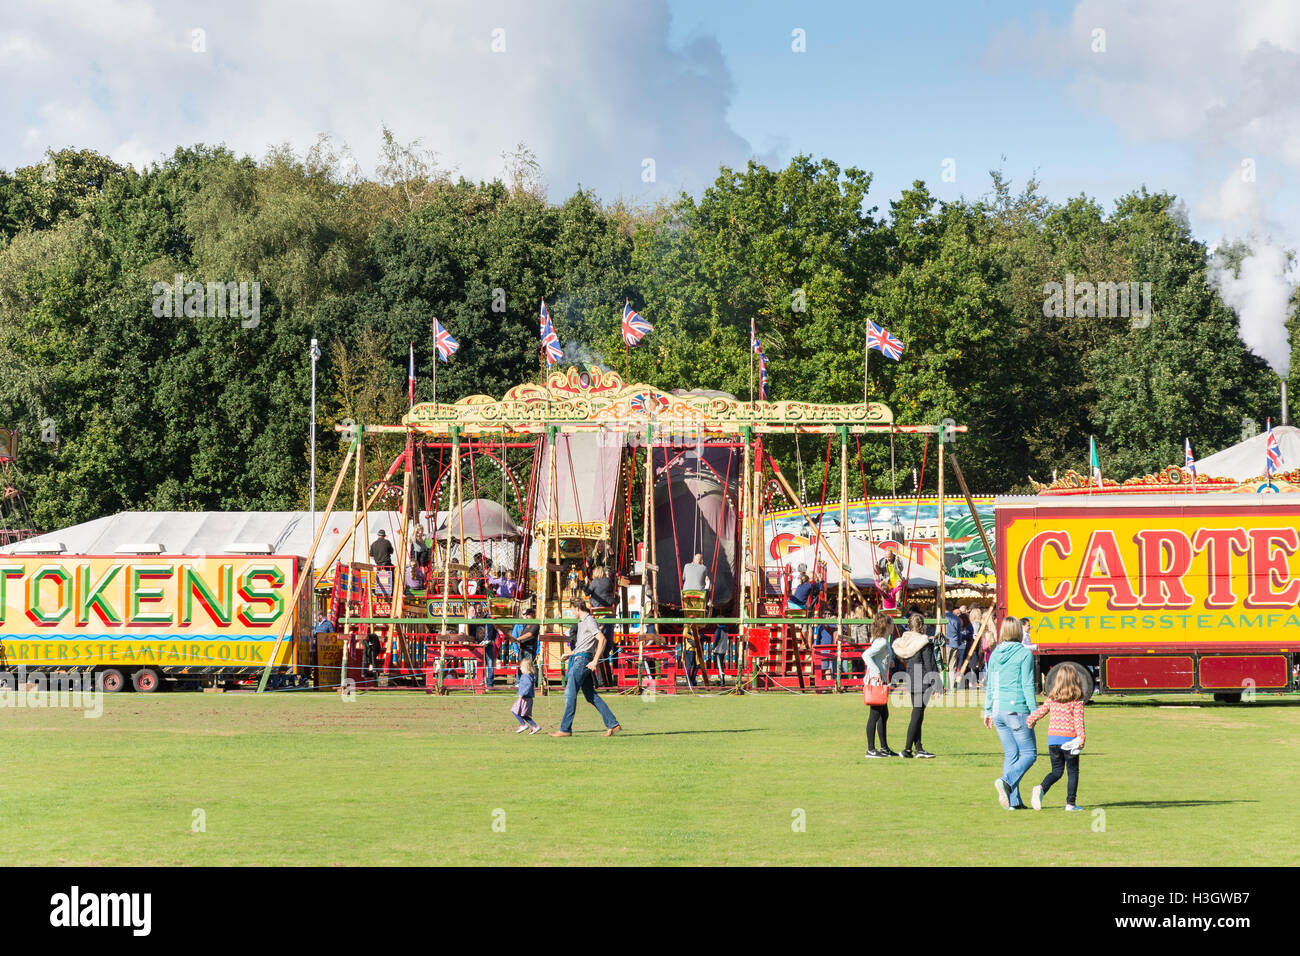 Vintage Carters Steam Fair on The Green, Englefield Green, Surrey, England, United Kingdom - Stock Image